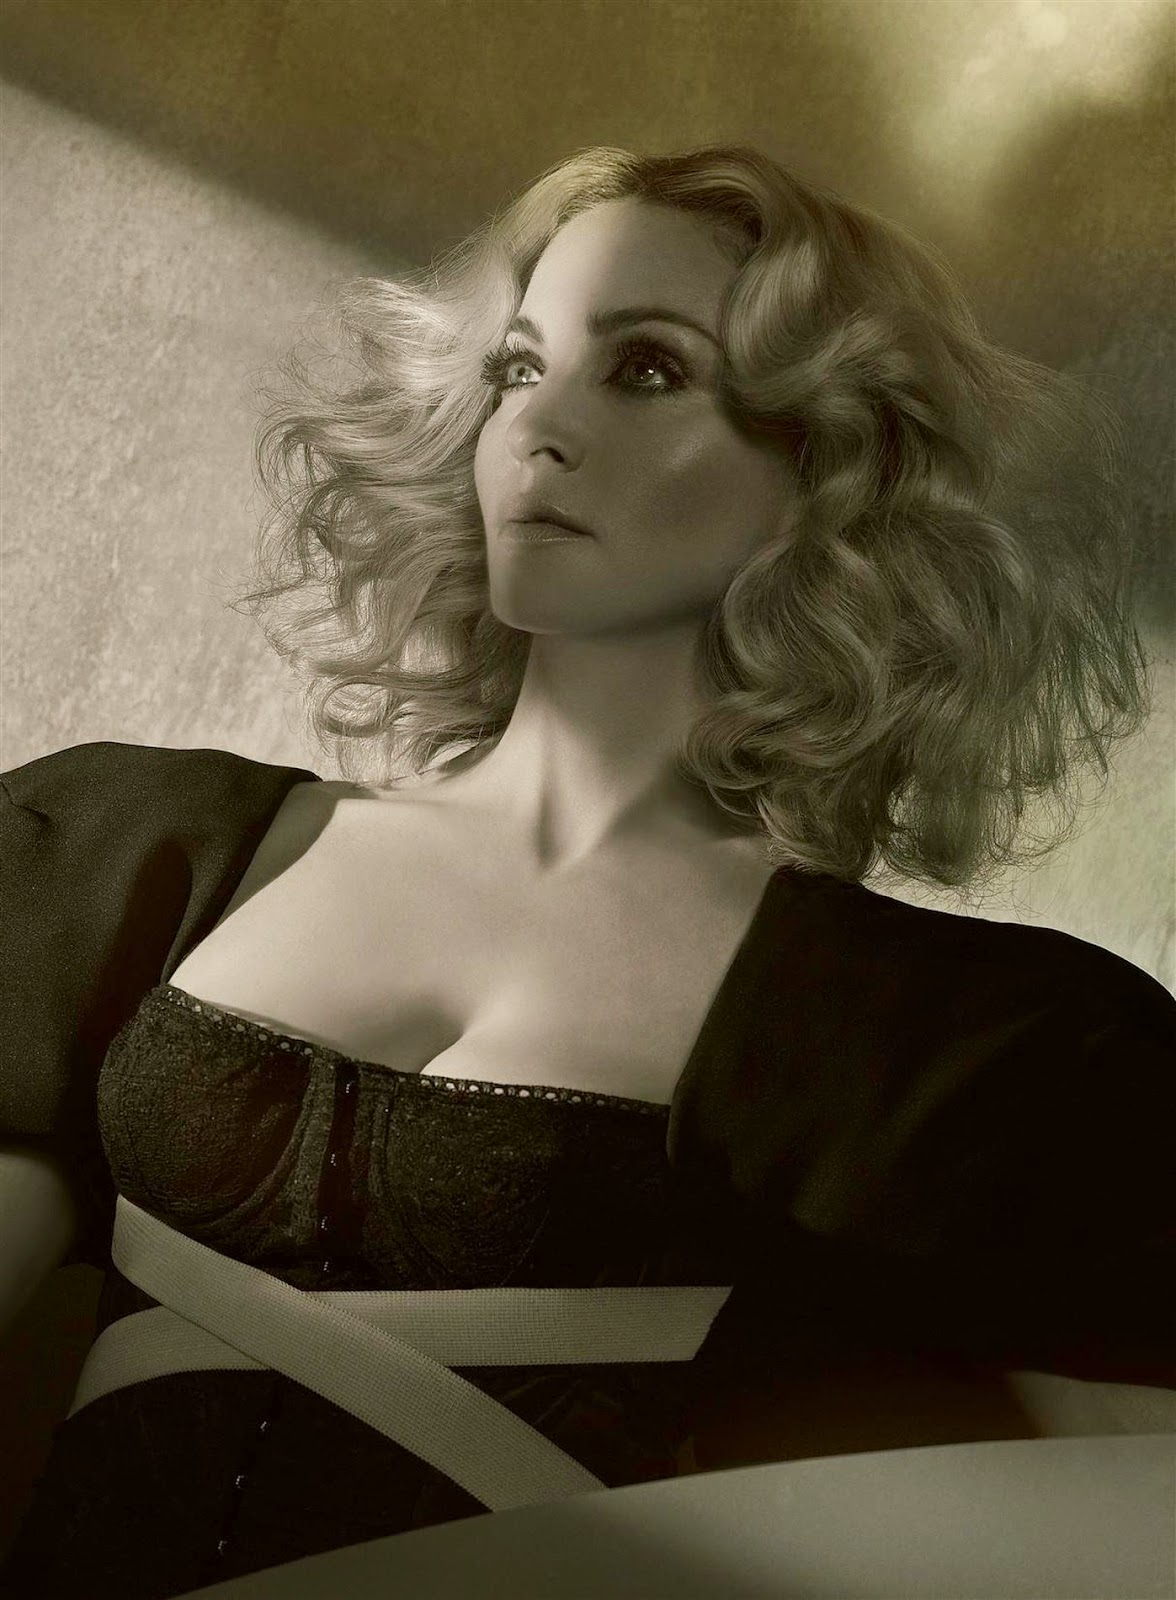 World Hot Actress: Madonna hot fantastic photoshoot for Hard Candy Steven Klein's hq photos